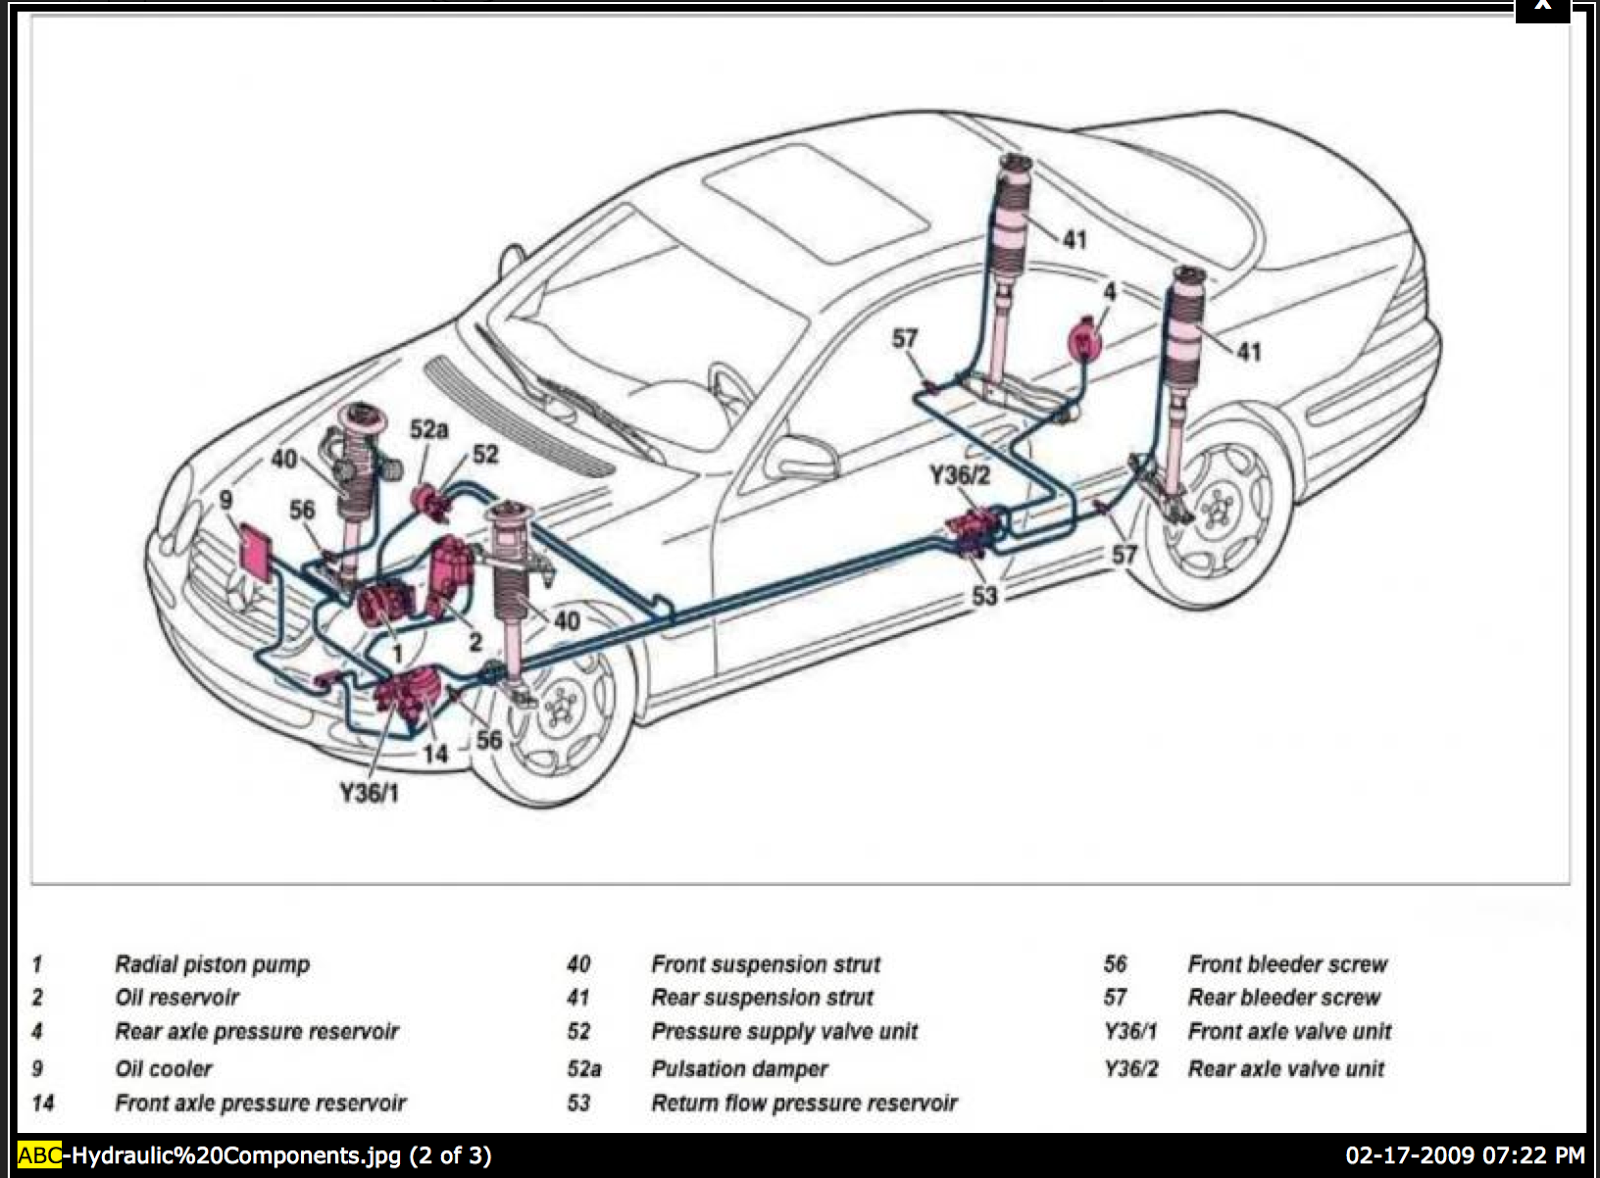 2000 mercedes s500 fuse box diagram with Overview Abc System Isthe Key Part Of on 477qm 1986 Mercedes Benz 190e Diagnose Ignition Switch A Wiring Diagram in addition Shower Valve Installation Diagram besides Car Audio California also Sel Furnace Wiring Diagram as well Honda Civic 2007 Engine Diagram.